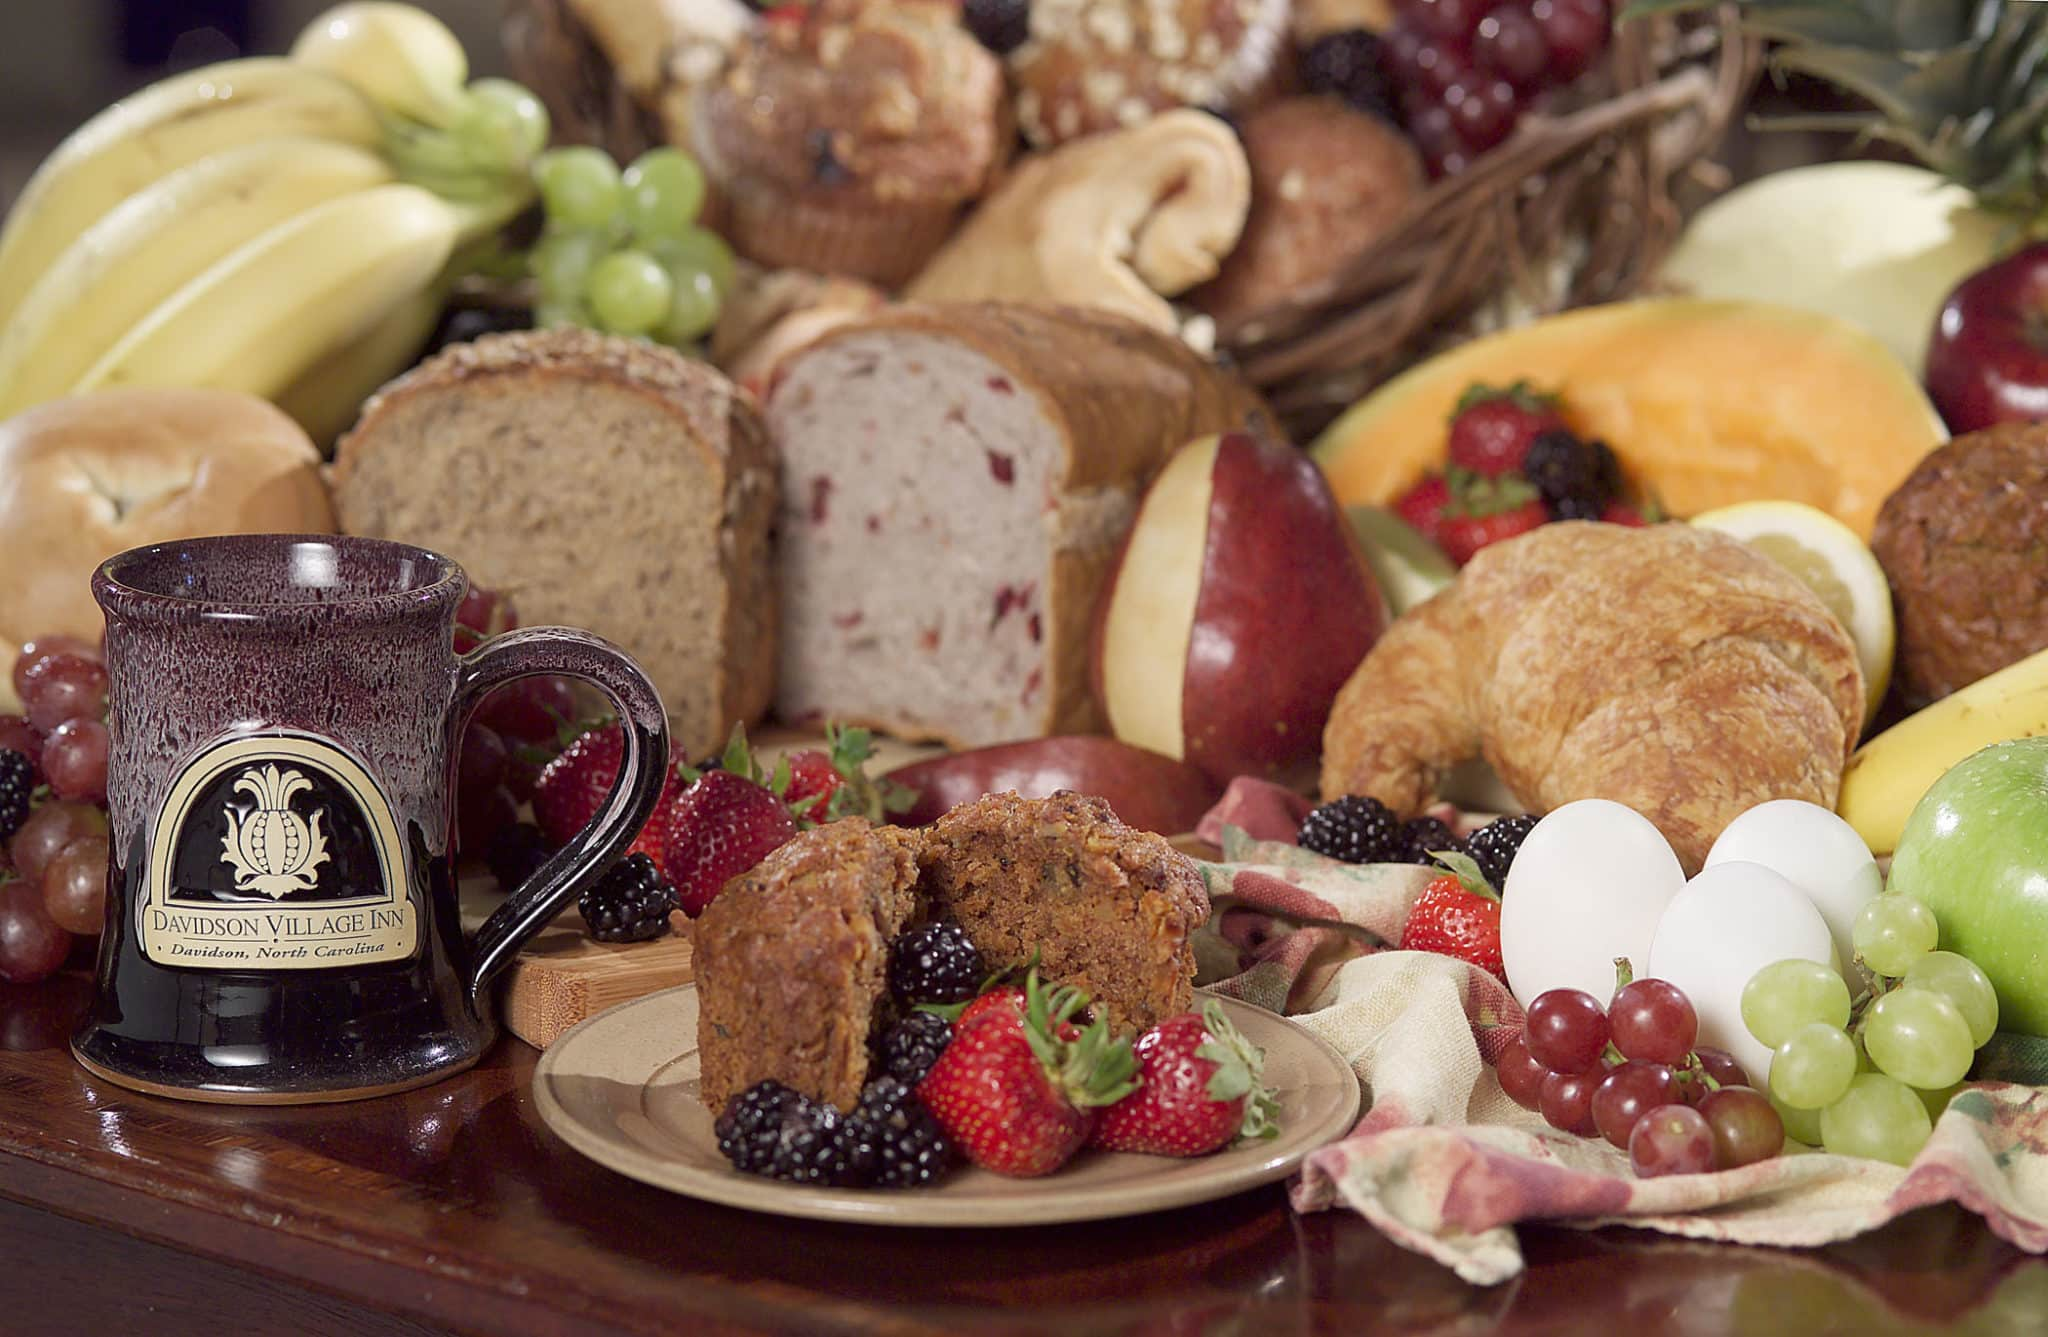 Delicious display of continental breakfast foods like fresh baked bread and fresh fruit